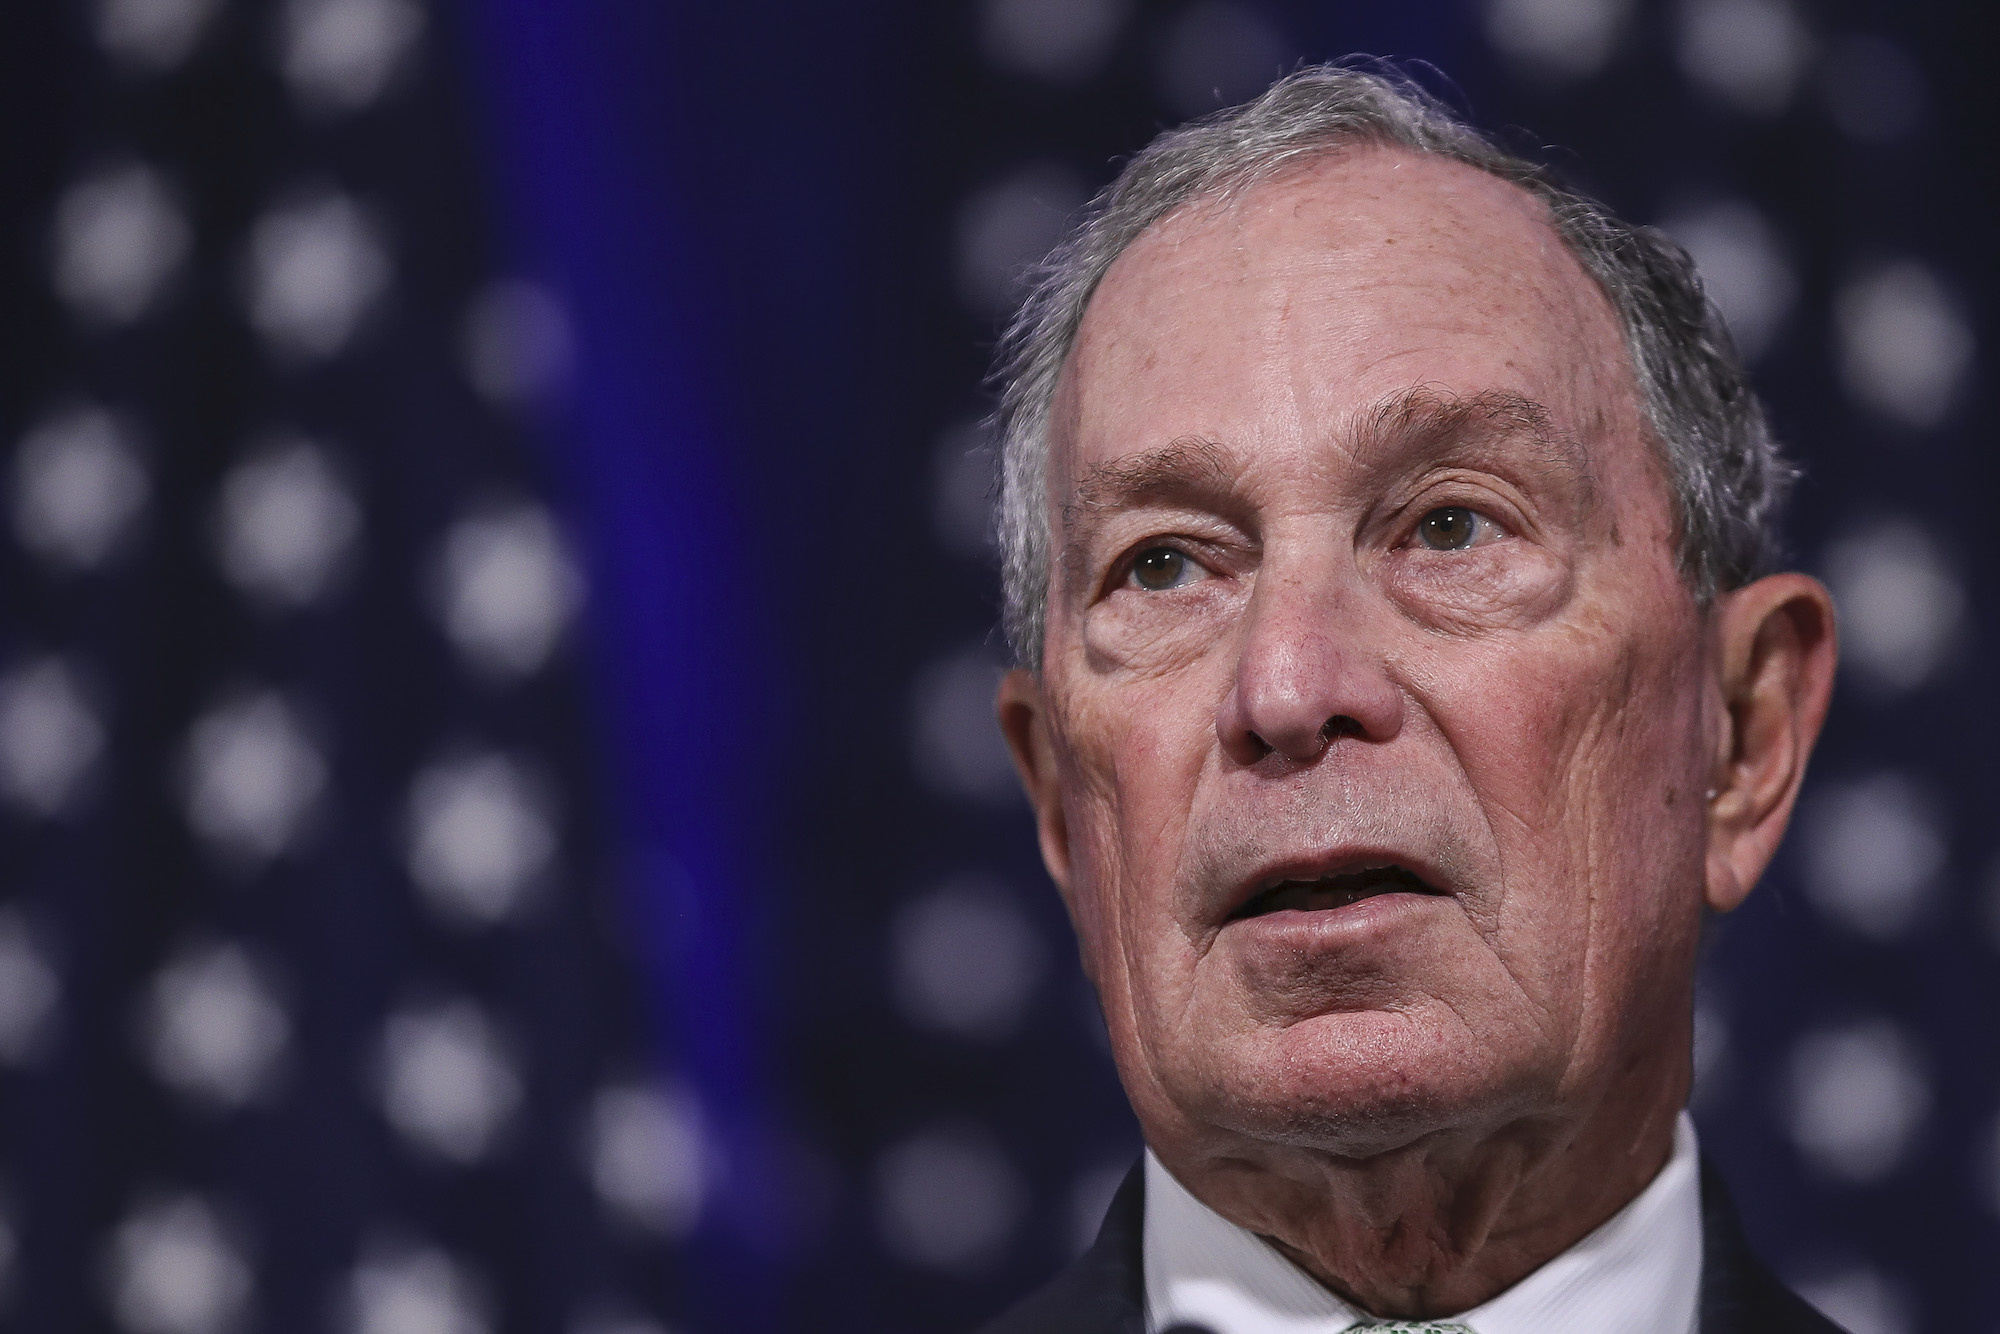 Bloomberg to release three women from their NDAs after devastating attack at Democratic debate